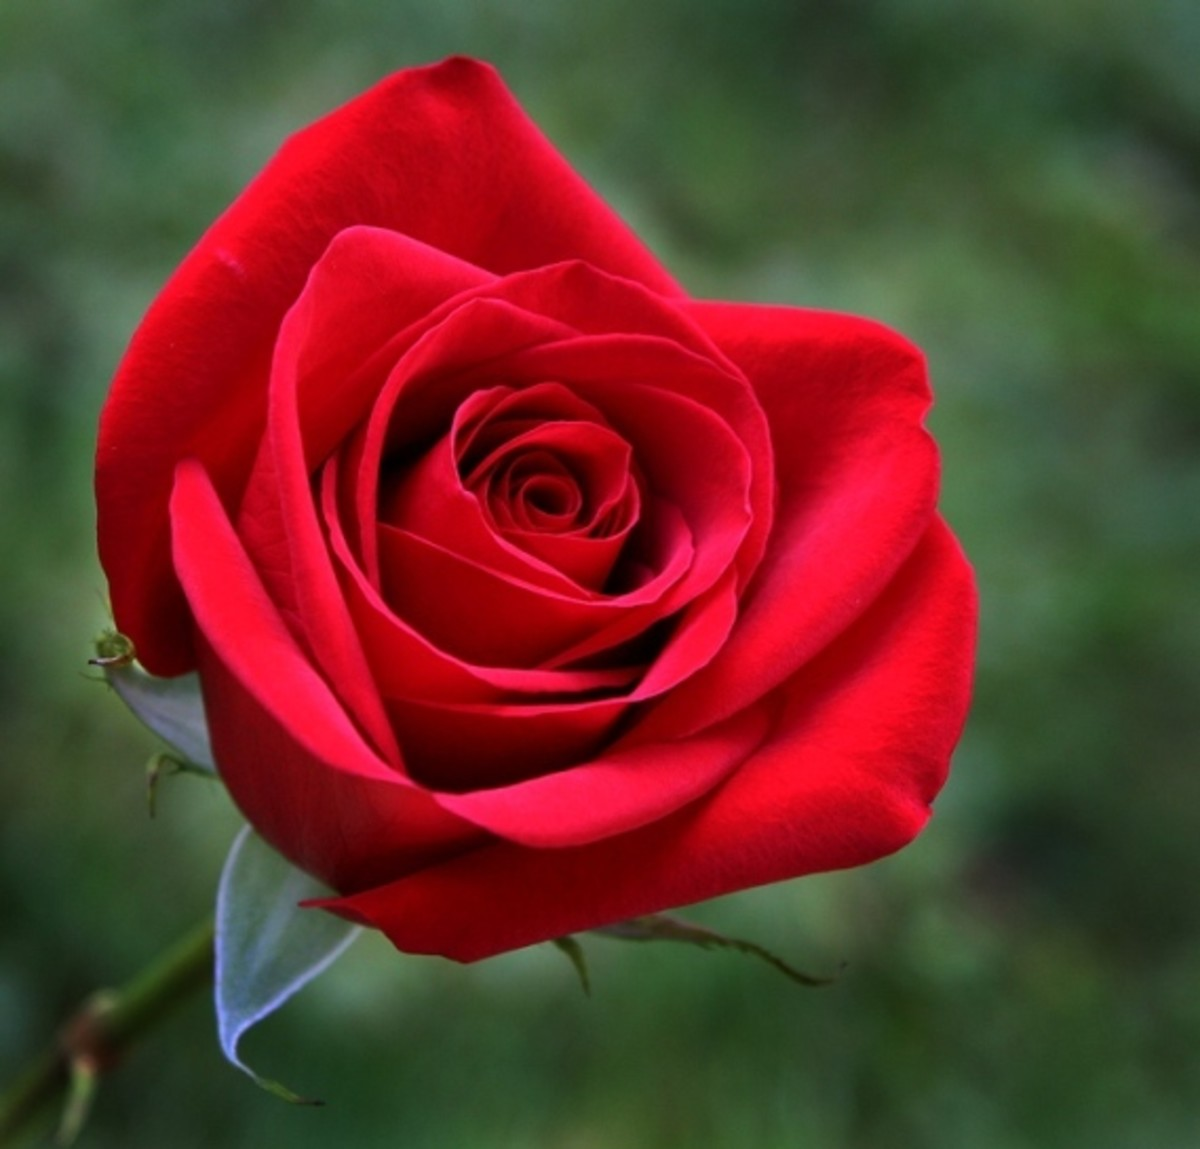 Love is often symbolised by a red rose.